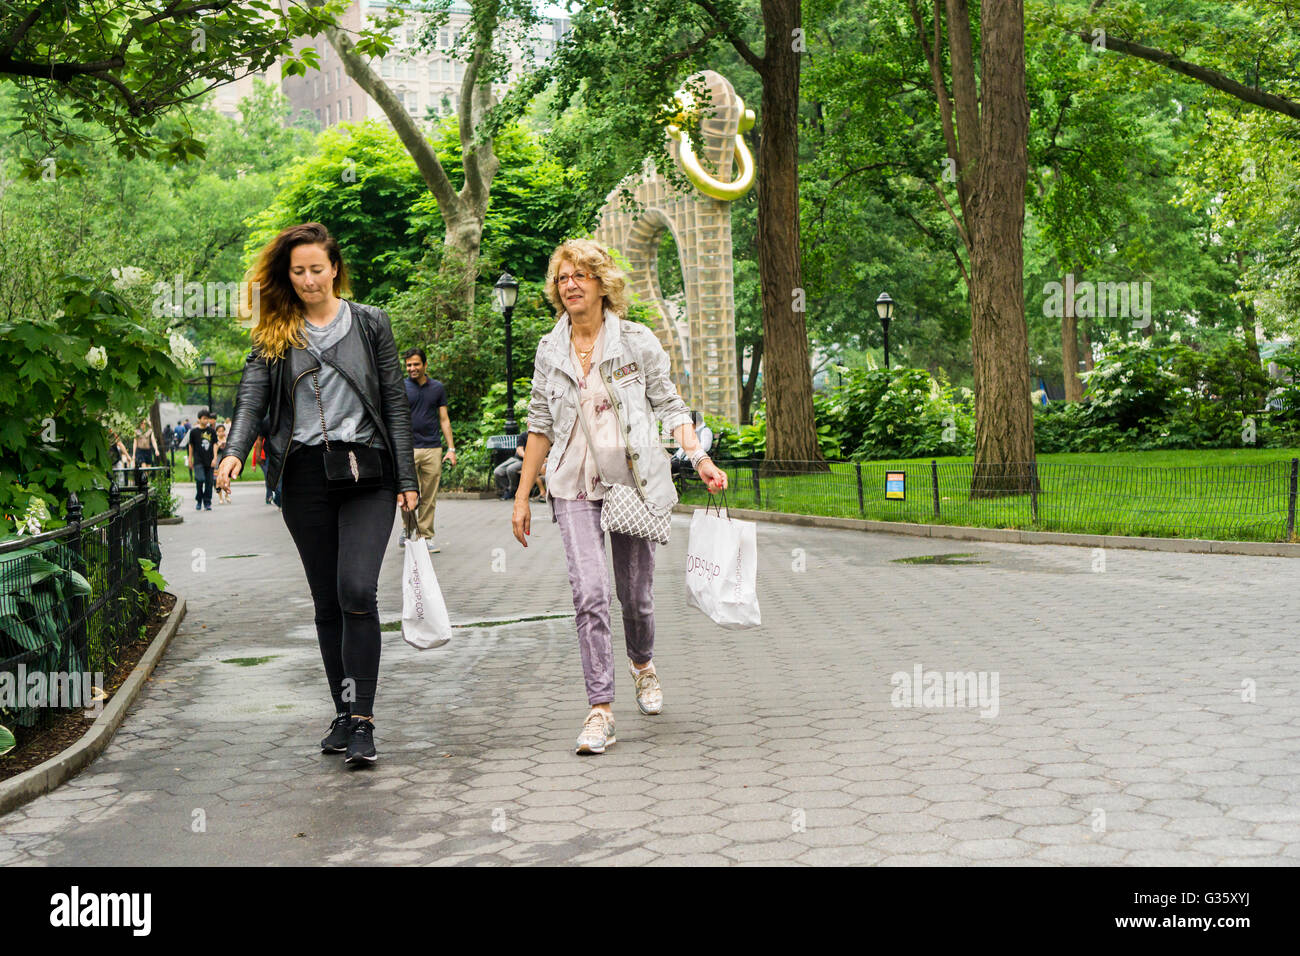 Shoppers with their purchases pass through Madison Square Park in New York on Sunday, June 5, 2016.  (© Richard - Stock Image